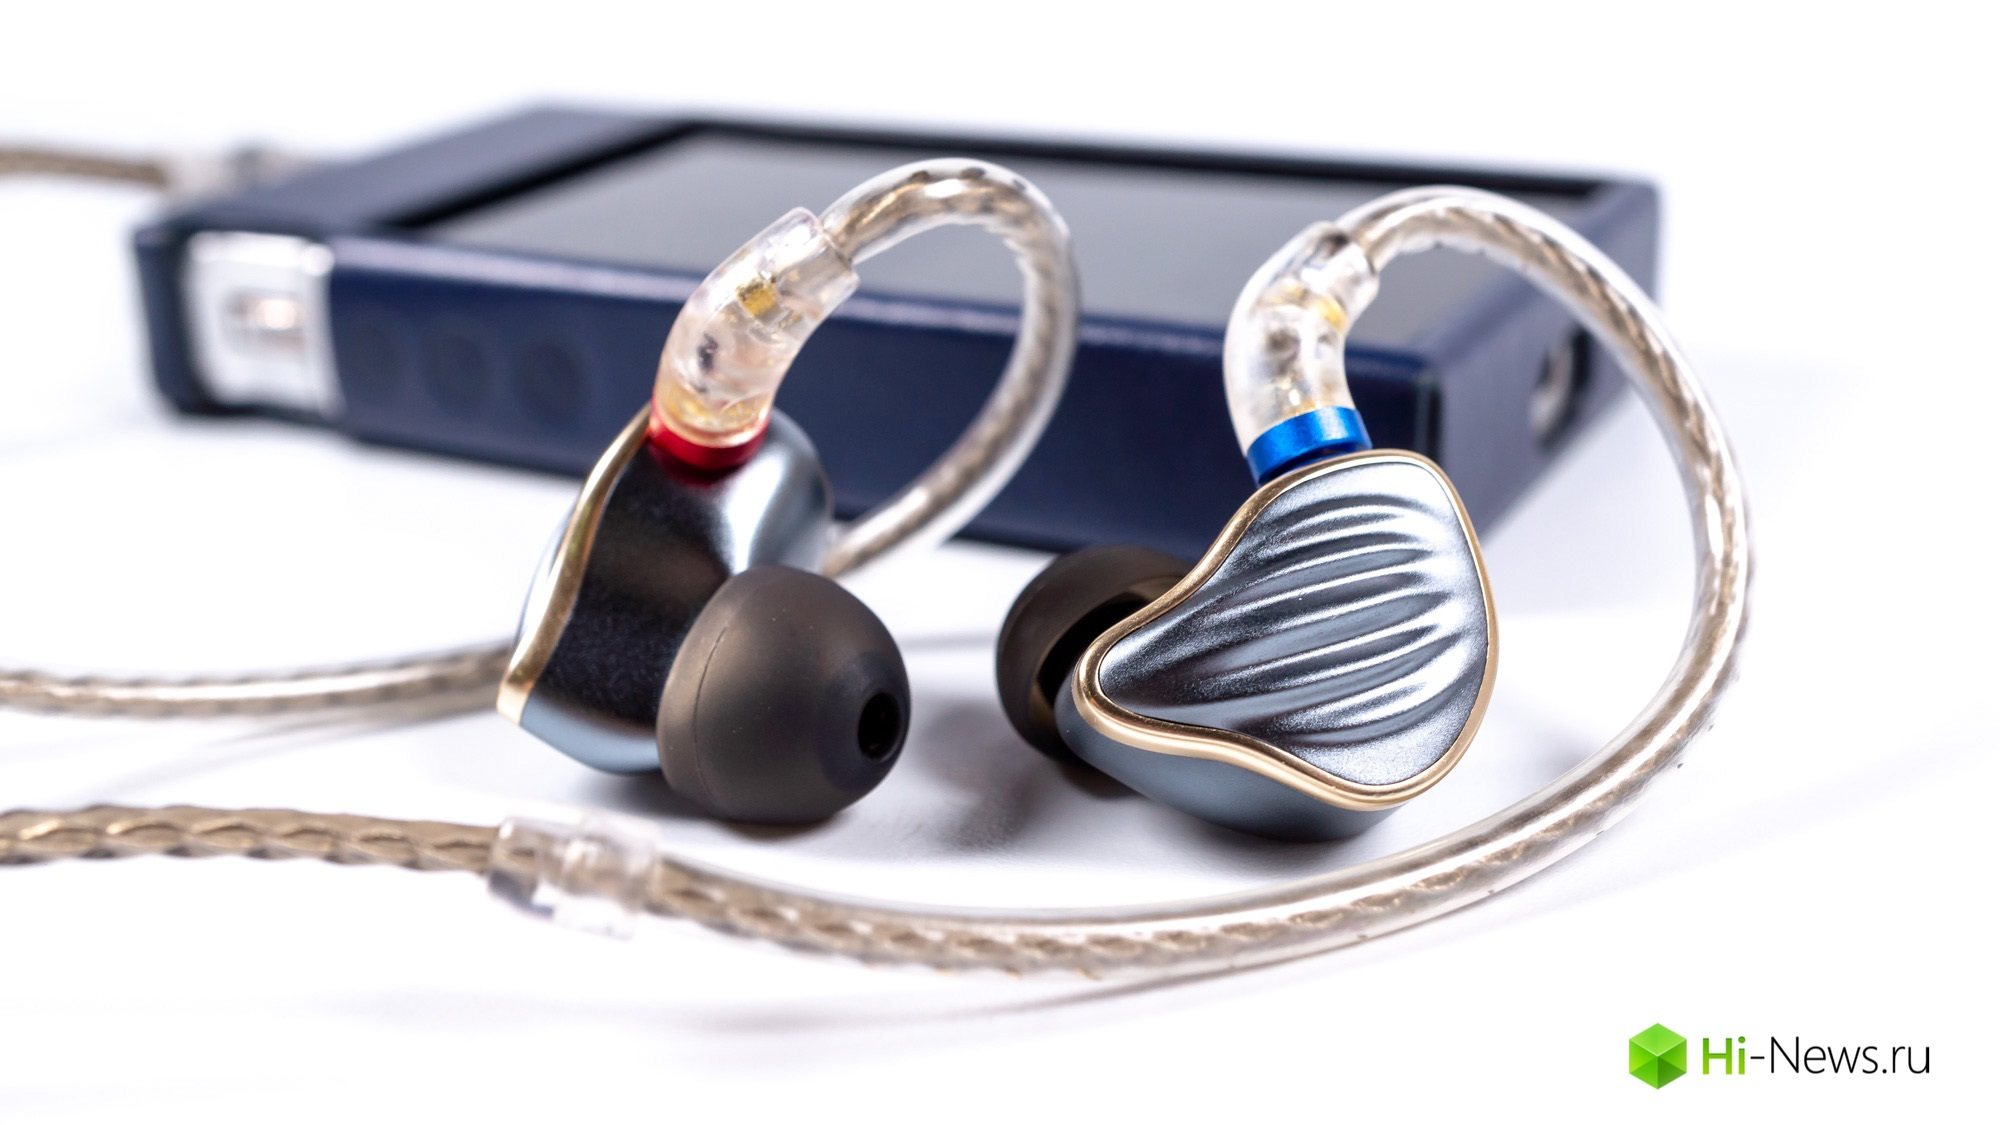 Overview headphones FiiO FH5 — technology, style and sound